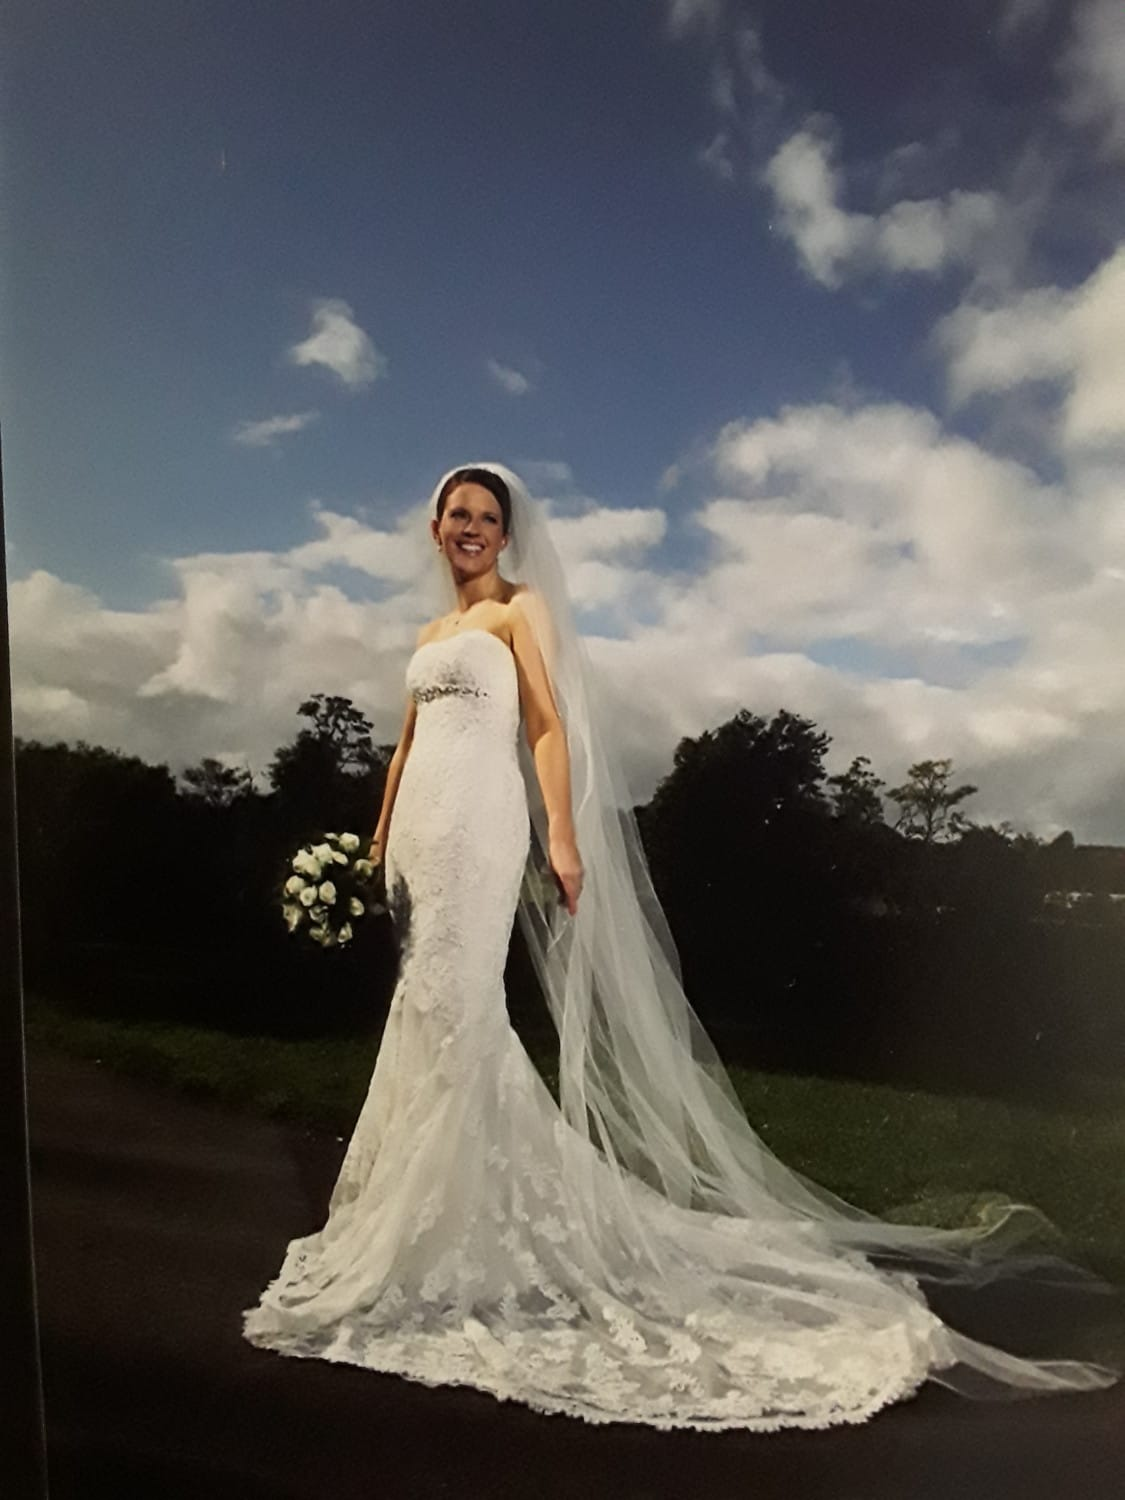 20180120 111152 1 sell my wedding dress online sell my for Sell wedding dress online